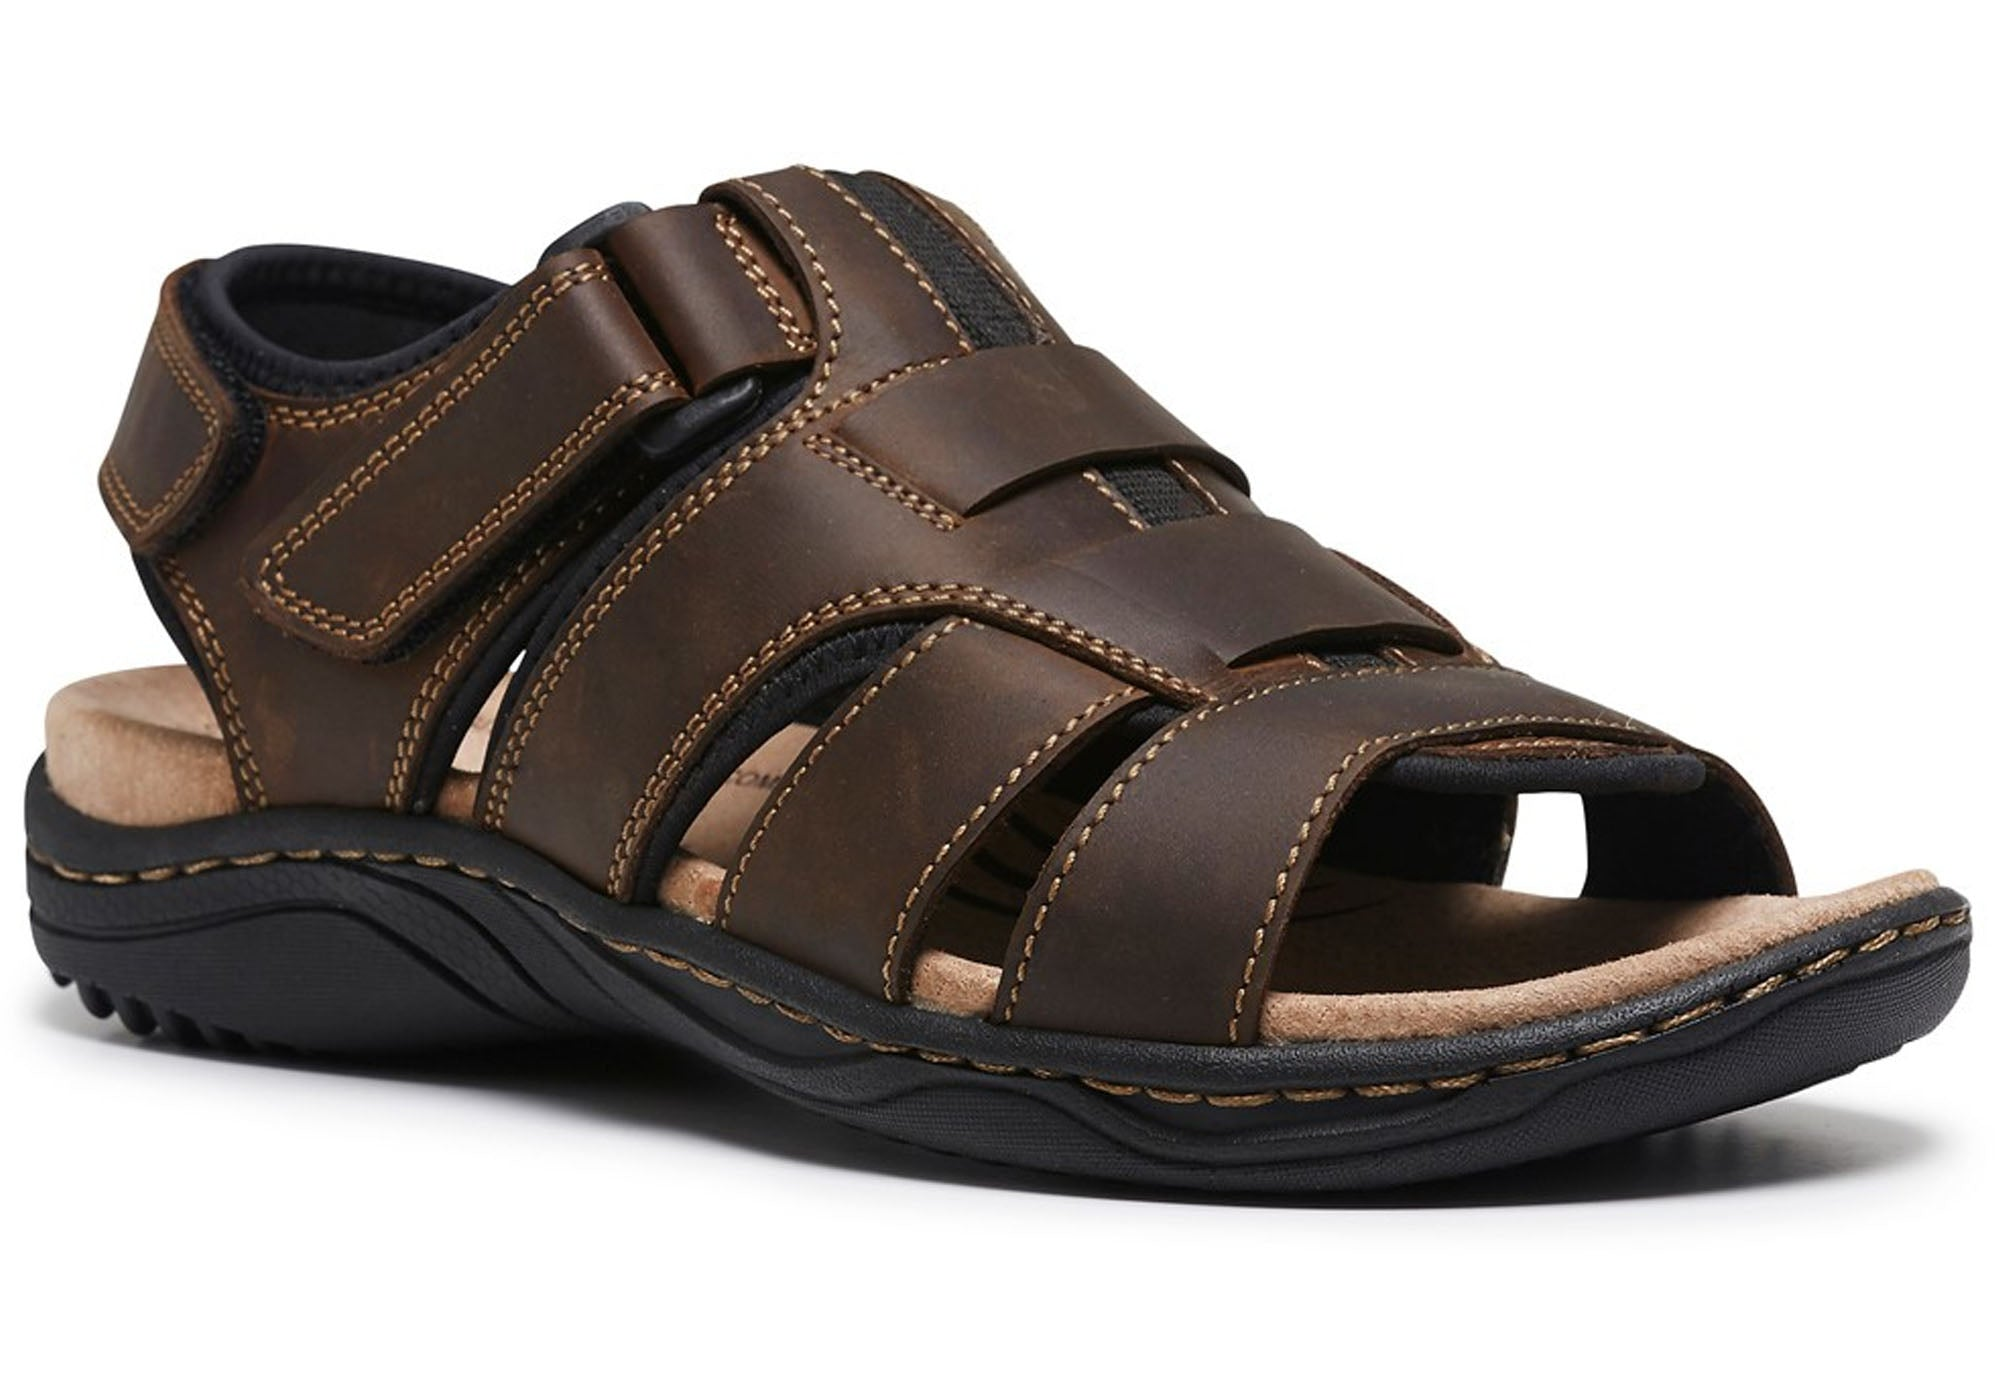 d3d5f56ac Home Hush Puppies Apollo Mens Leather Comfortable Sandals. Brown  Brown   Brown